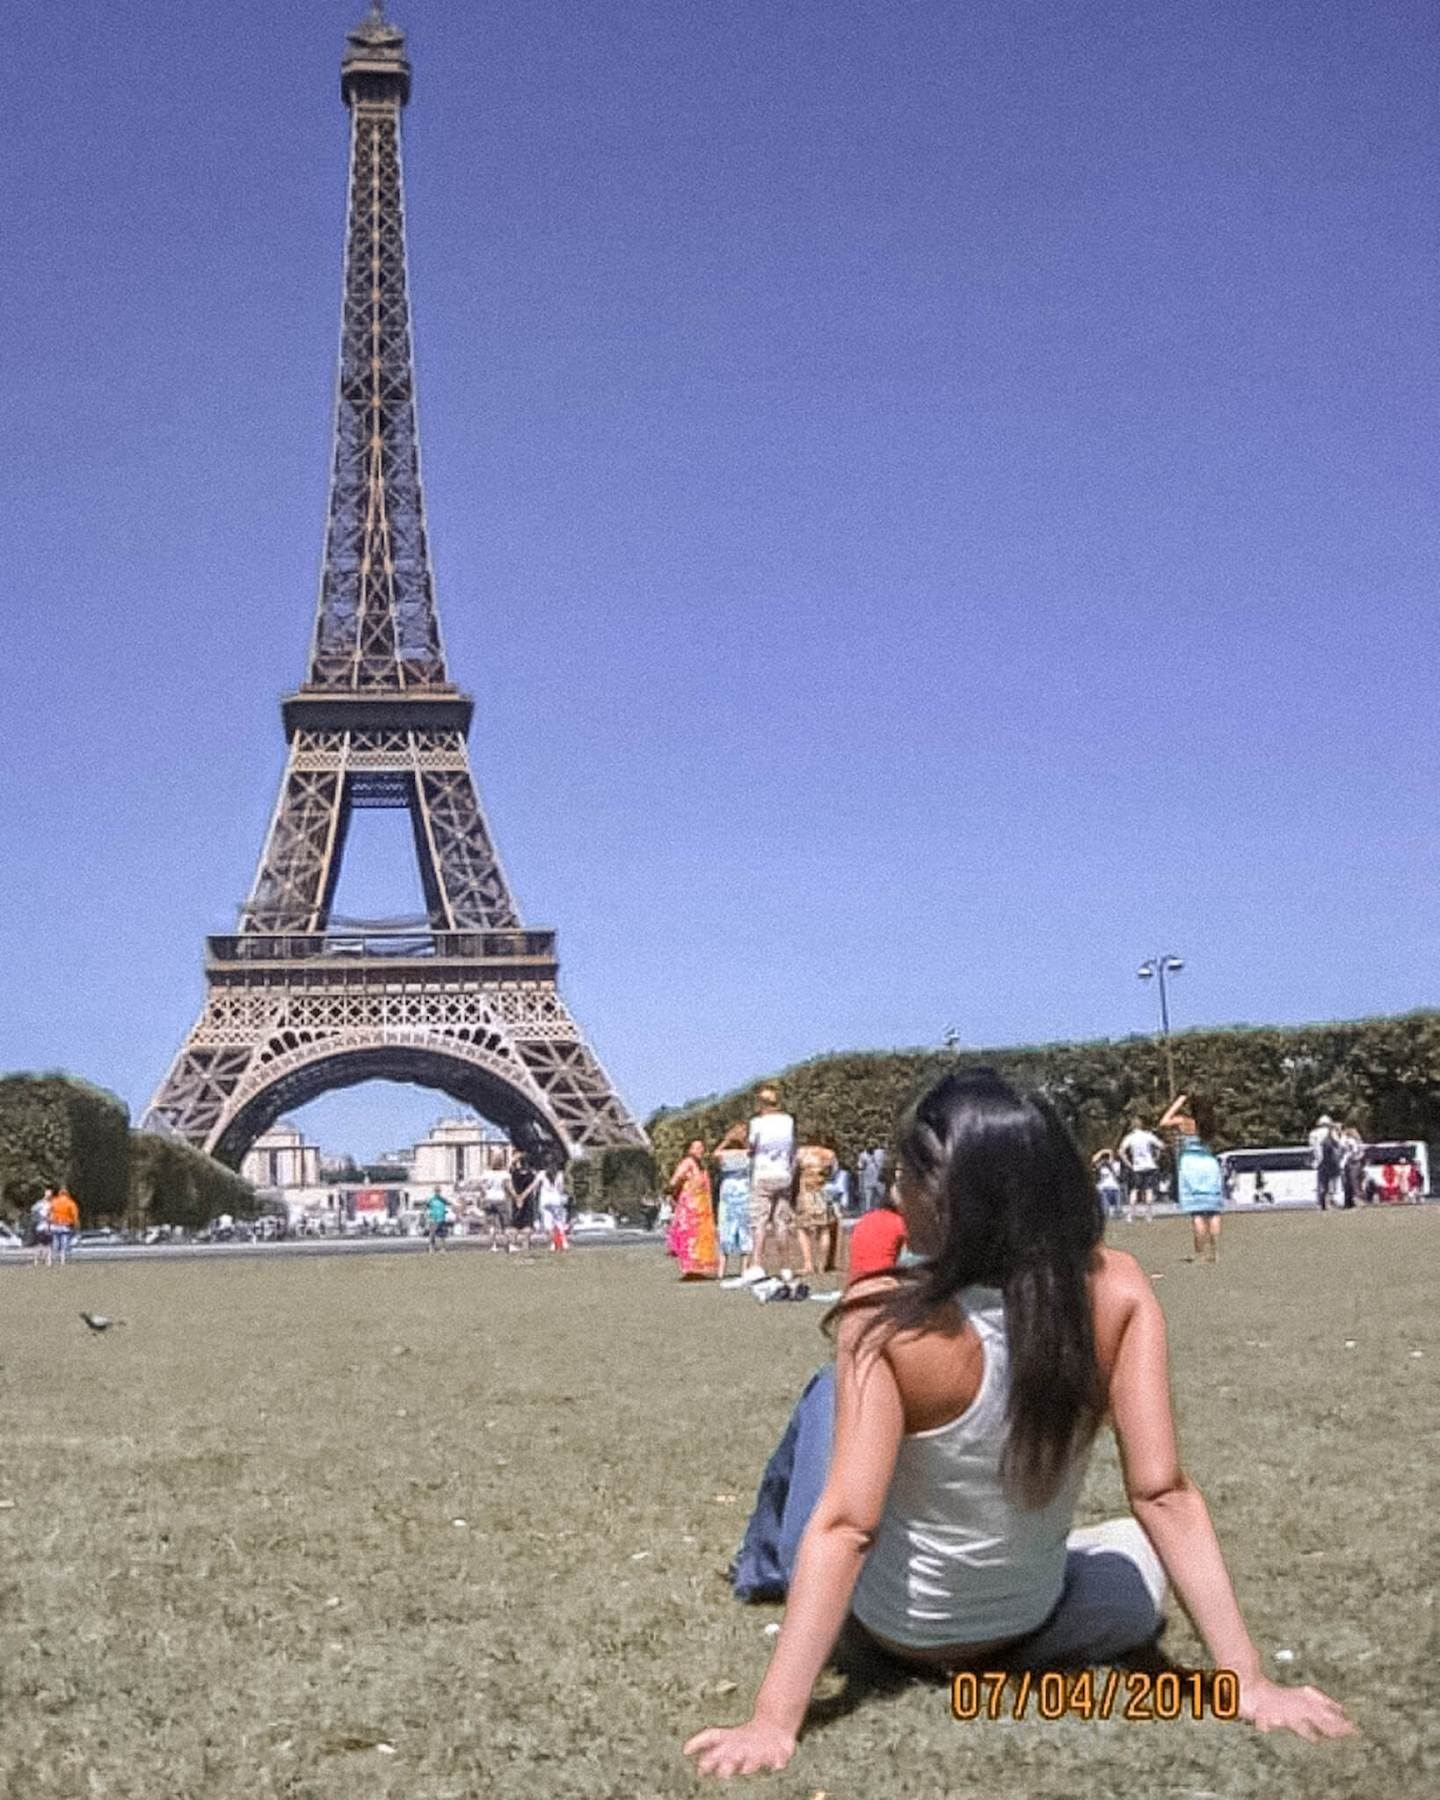 girl admiring Eiffel Tower, Summer, Summer in Paris, Versos en Paris, Verano 2010, first solo trip, Primer viaje sola, sunny day in Paris, park in Paris, Parque en Paris, European summer, Verano en Europa, solo female travel, how I became a solo traveler, travel memories, memorias de viajes, july 2010, Julio 2010